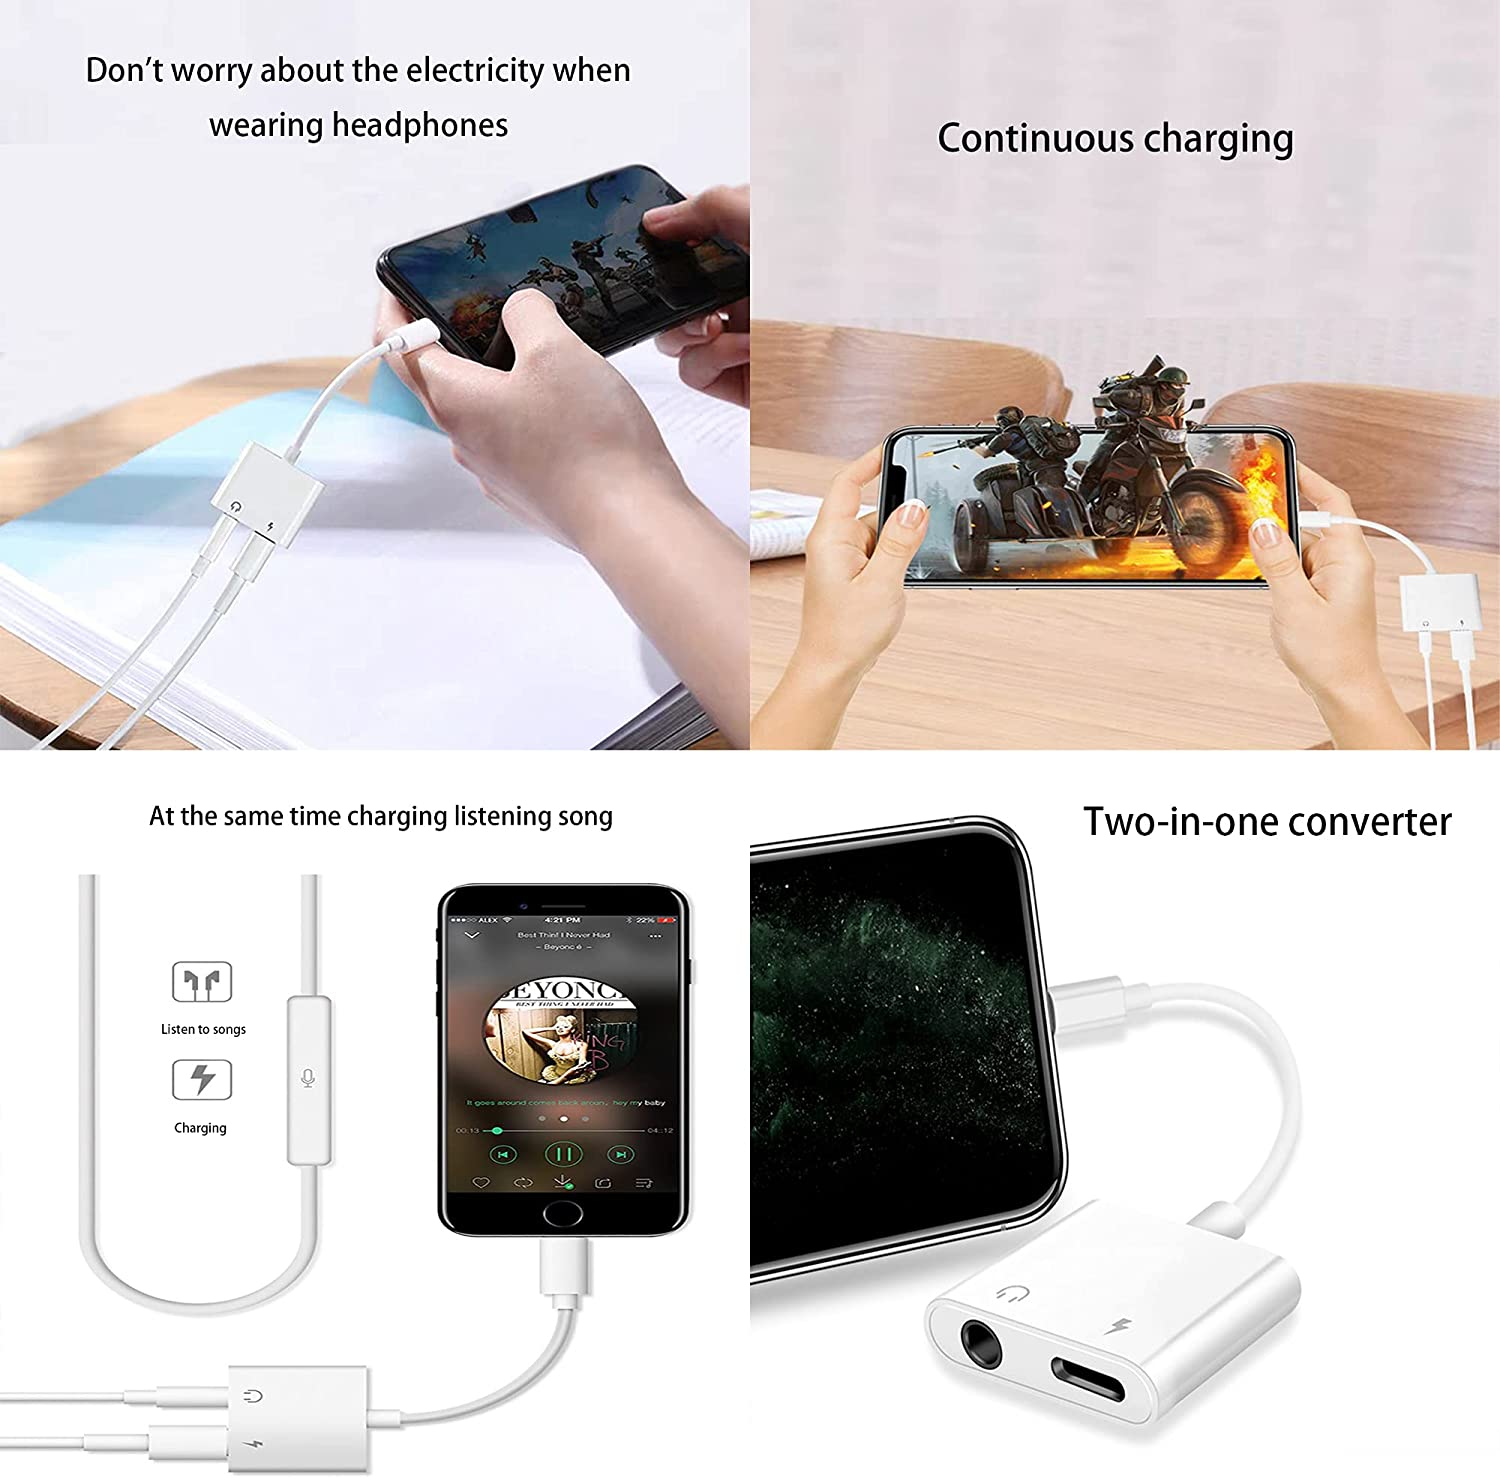 [Apple MFi Certified] iPhone Headphones Adapter Splitter 2 in 1 Lightning to 3.5mm AUX Audio + Charger Splitter Compatible with iPhone 12/11/XS/XR/X 8 7/iPad Support iOS 14 (1 Pack)